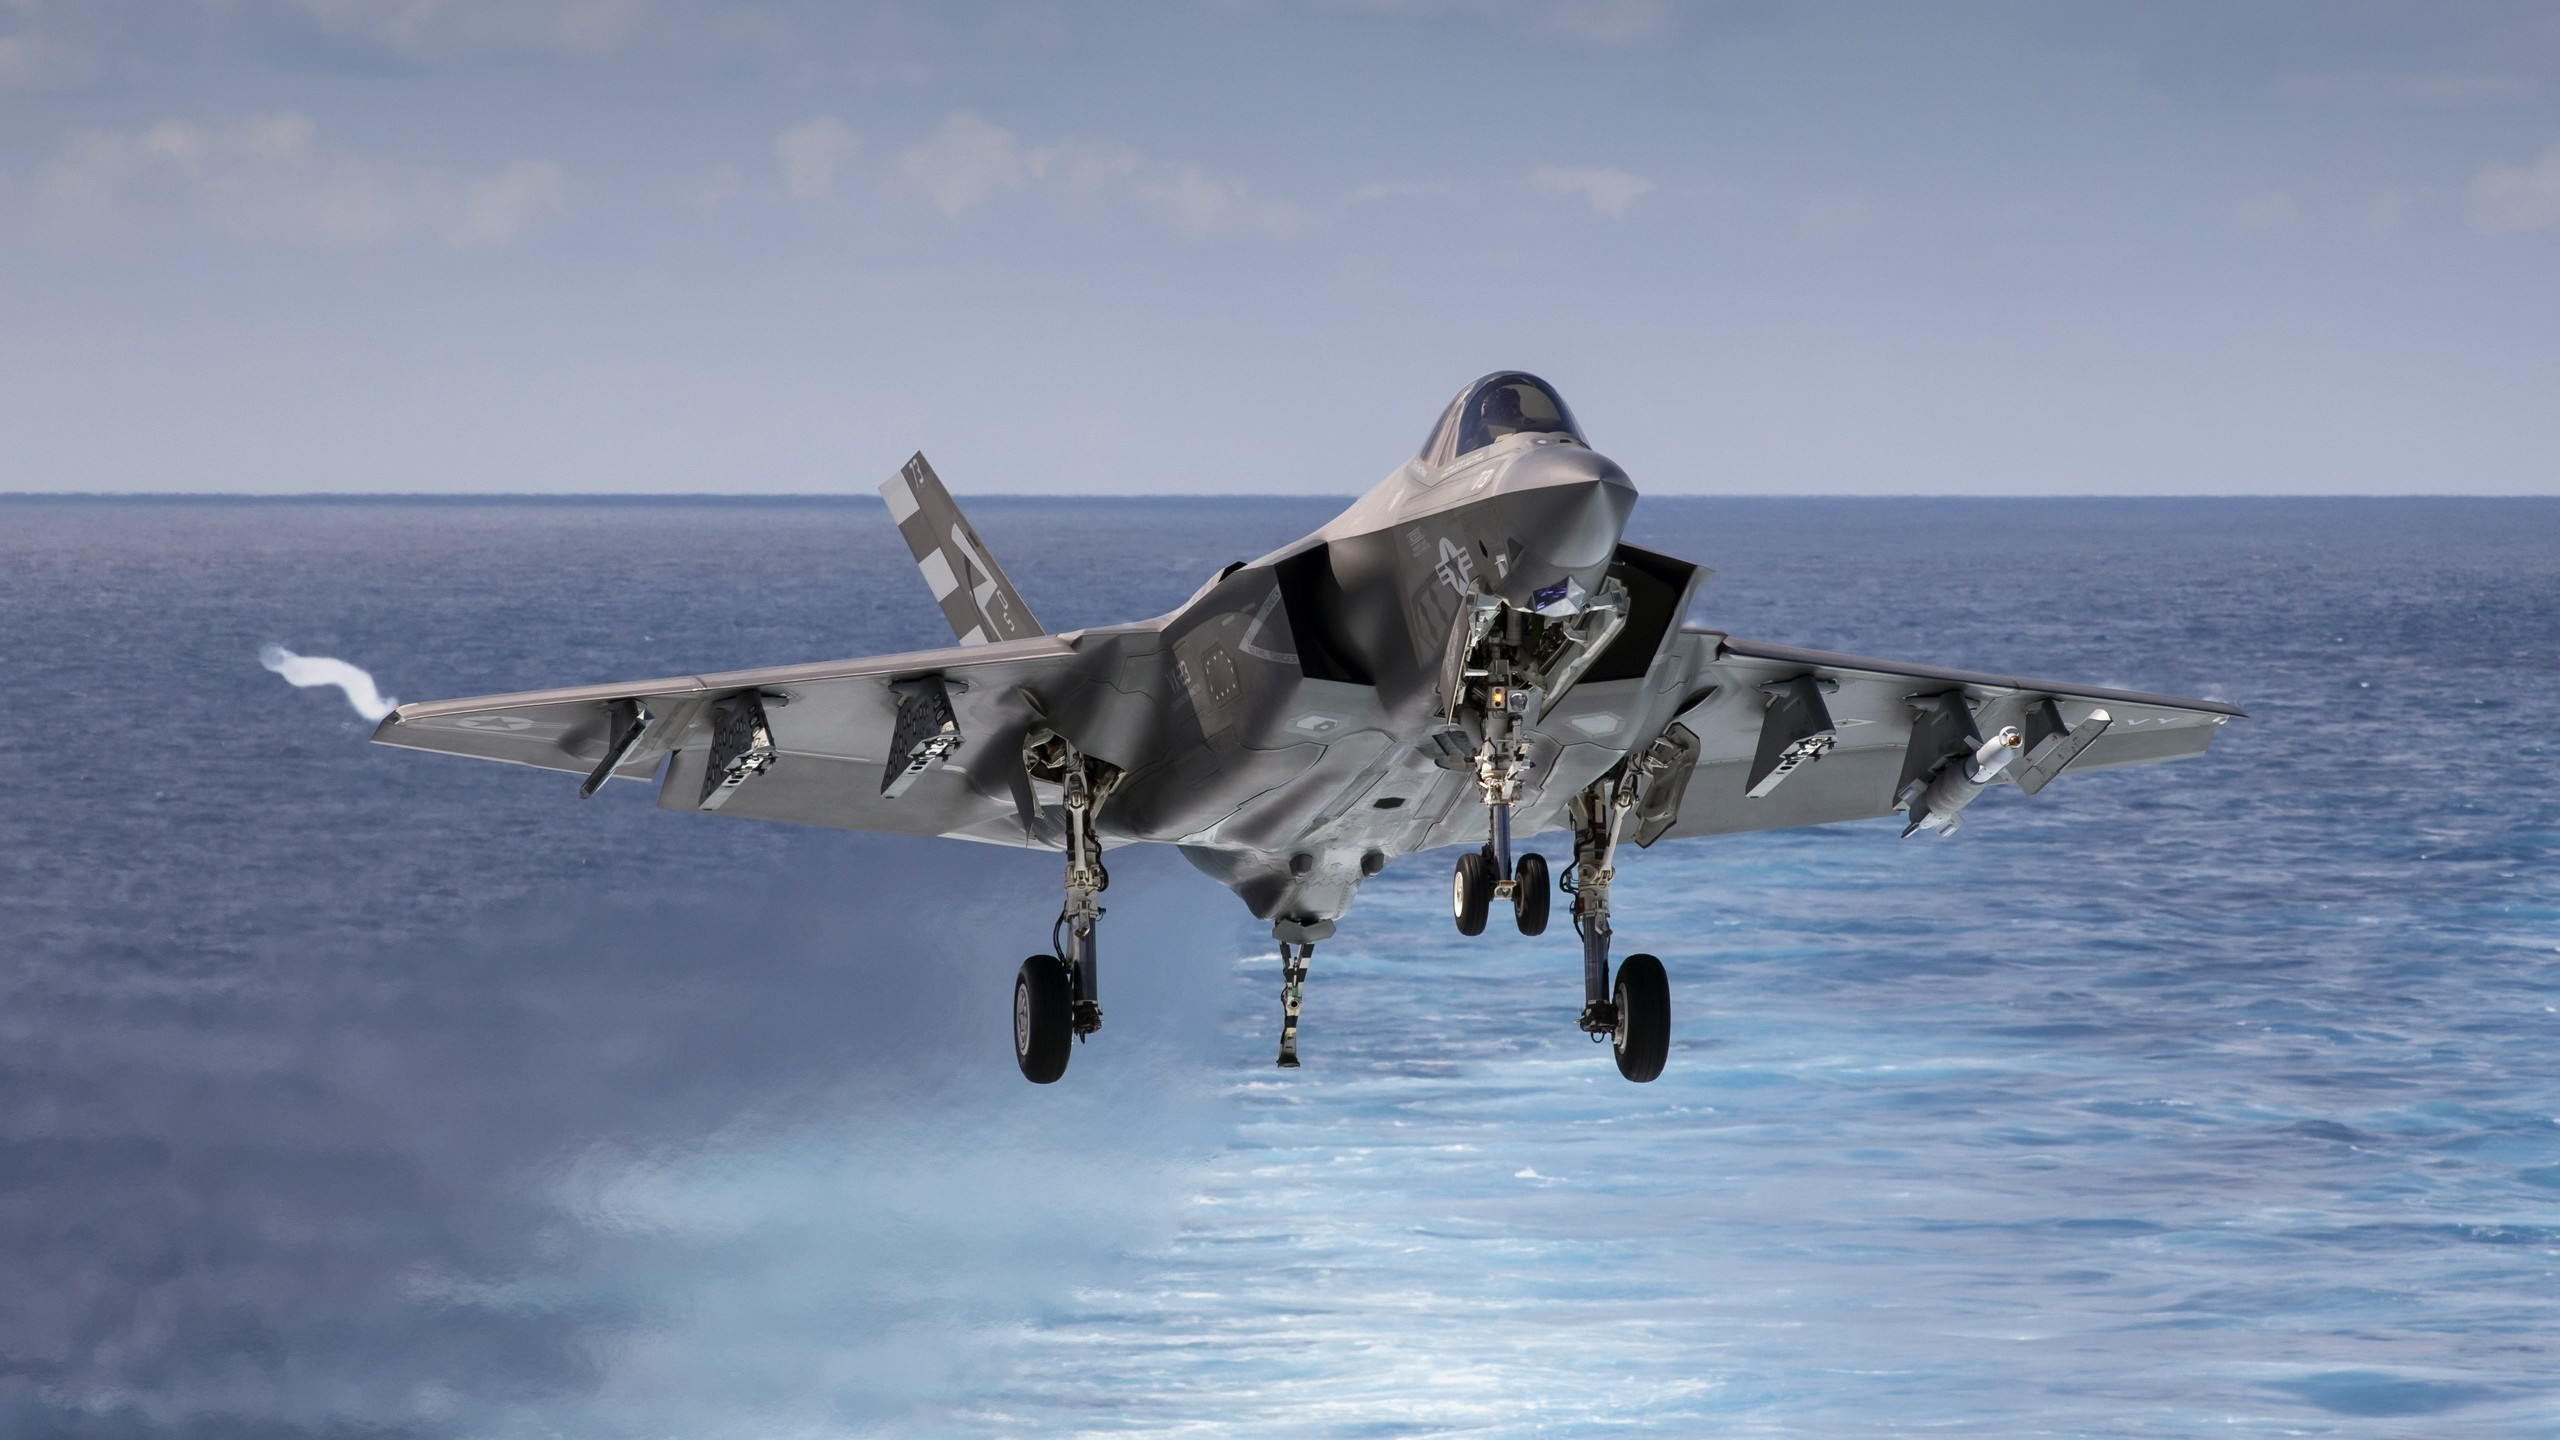 lockheed-martin-f-35-lightning-ii-2560x1440-stealth-fighter-us-air-2136_1.jpg